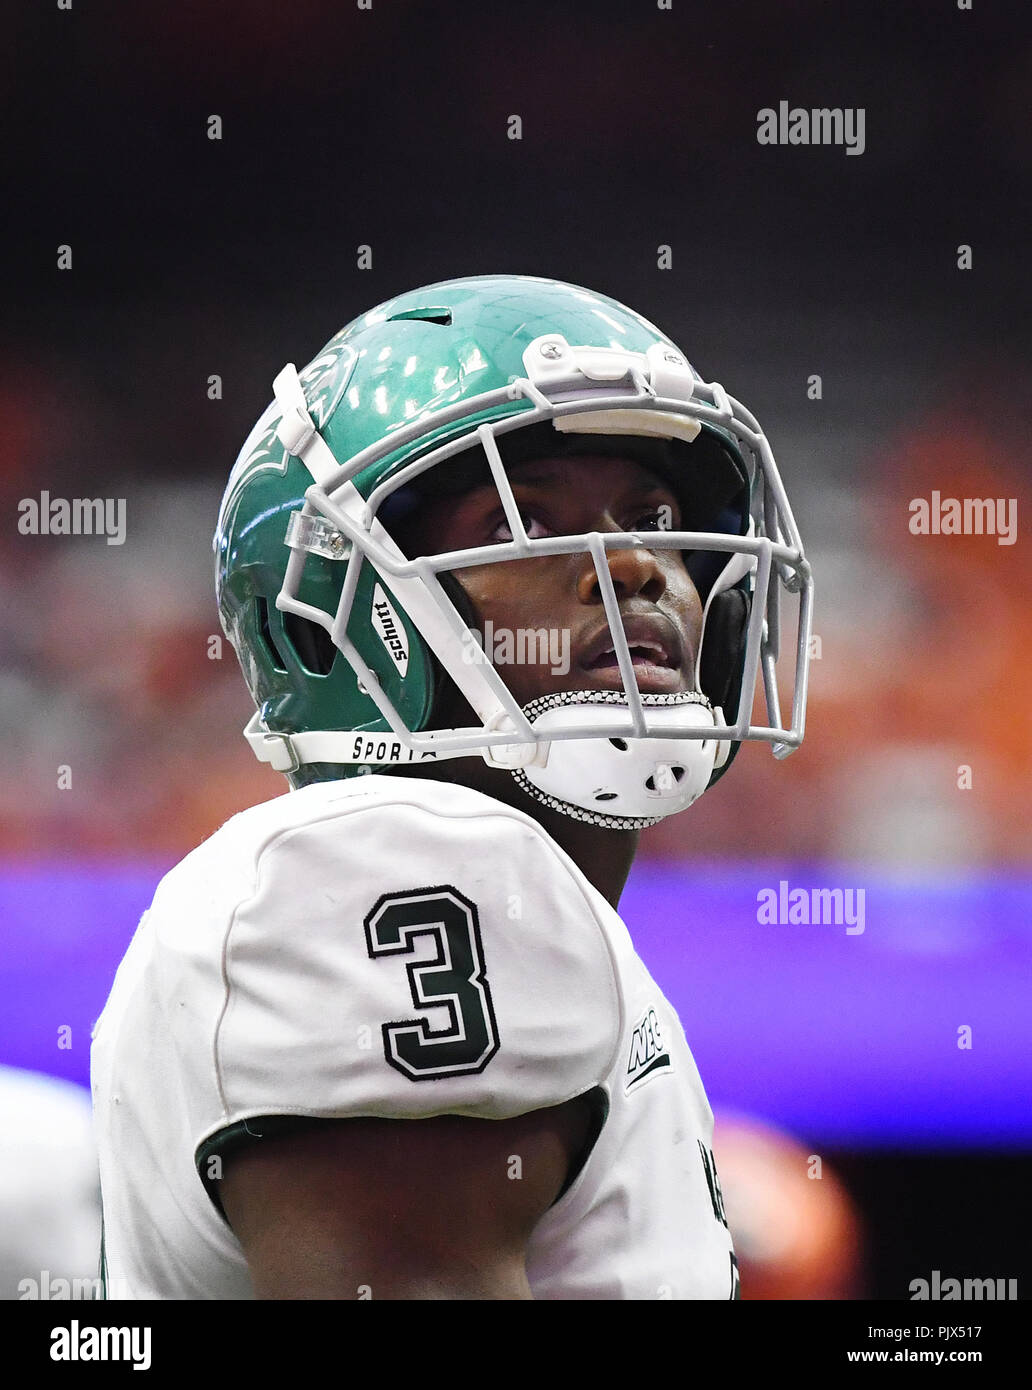 Syracuse, NY, USA. 8th Sep, 2018. Syracuse defeated Wagner 62-10 at the Carrier Dome in Syracuse, NY. Photo by Alan Schwartz/Cal Sport Media/Alamy Live News - Stock Image